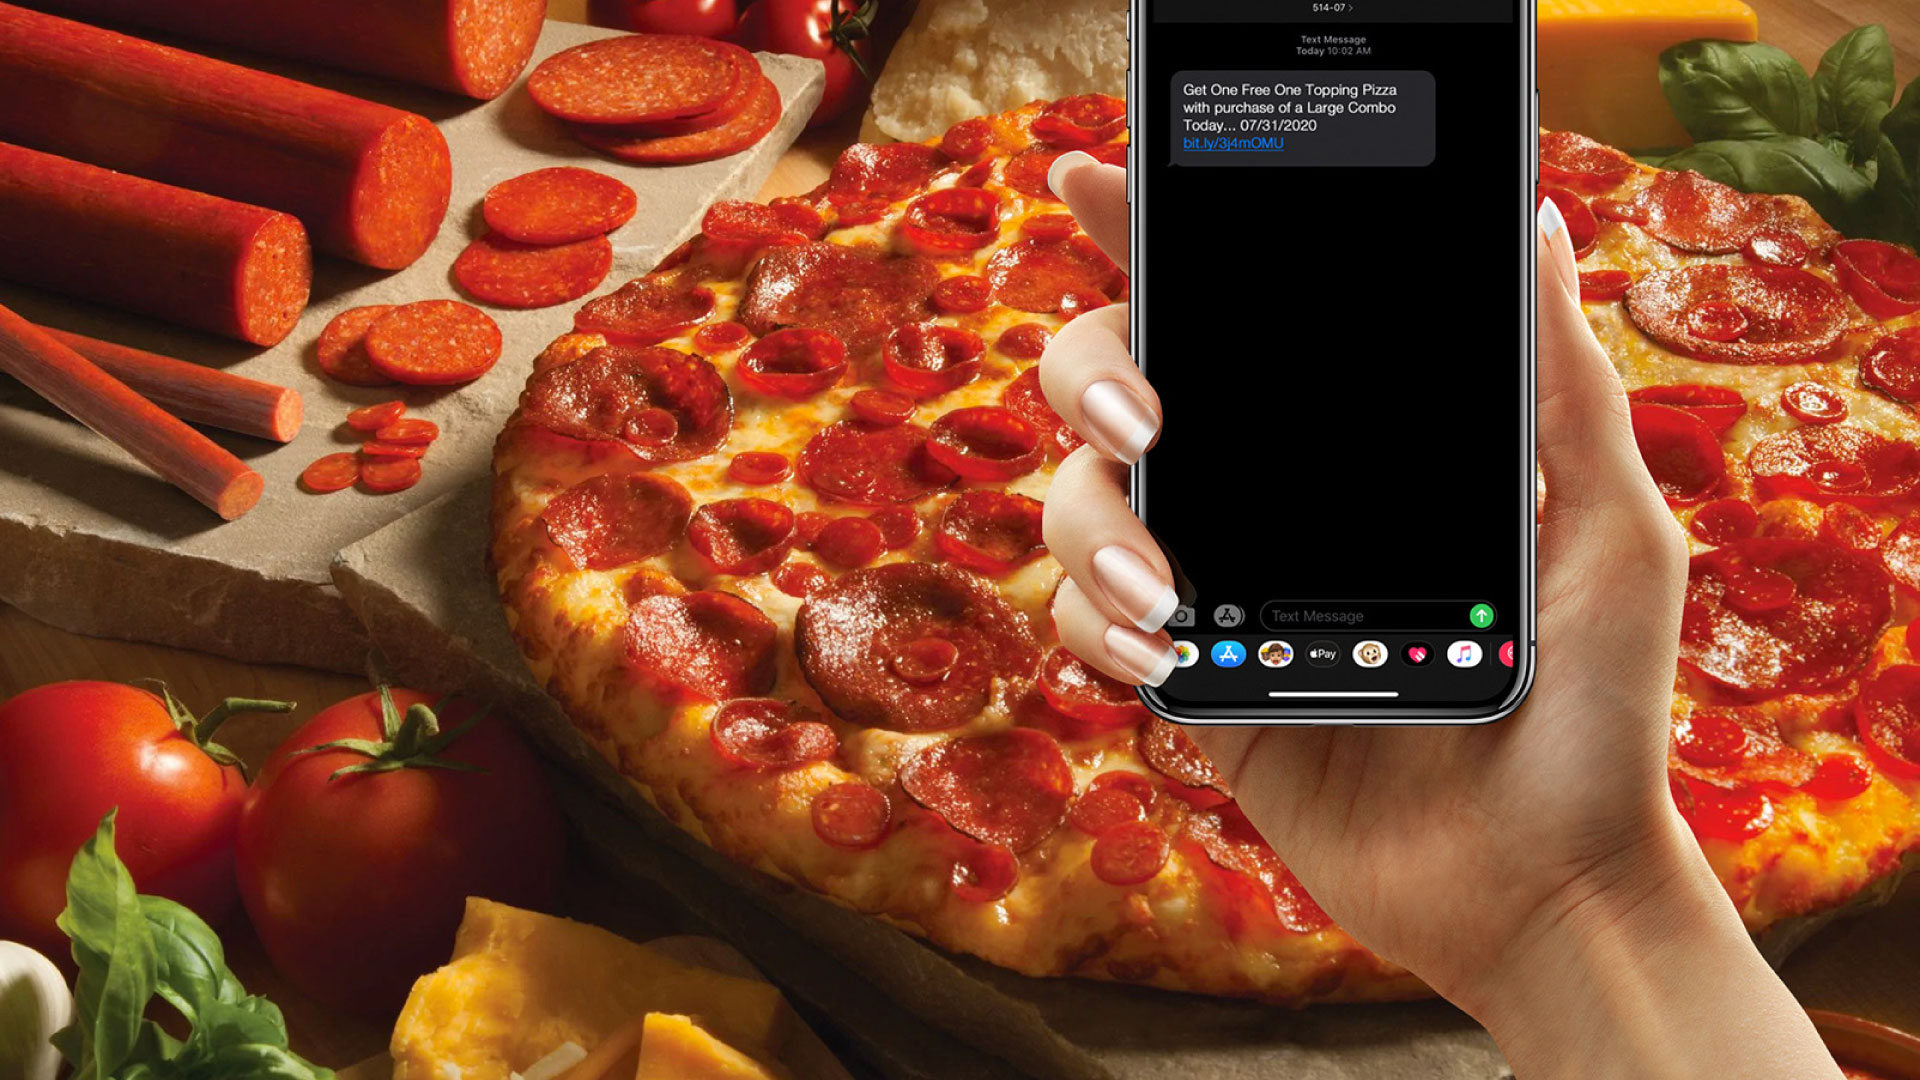 Restaurant Chain Mobile Message-Based Campaign Proves Old Adages